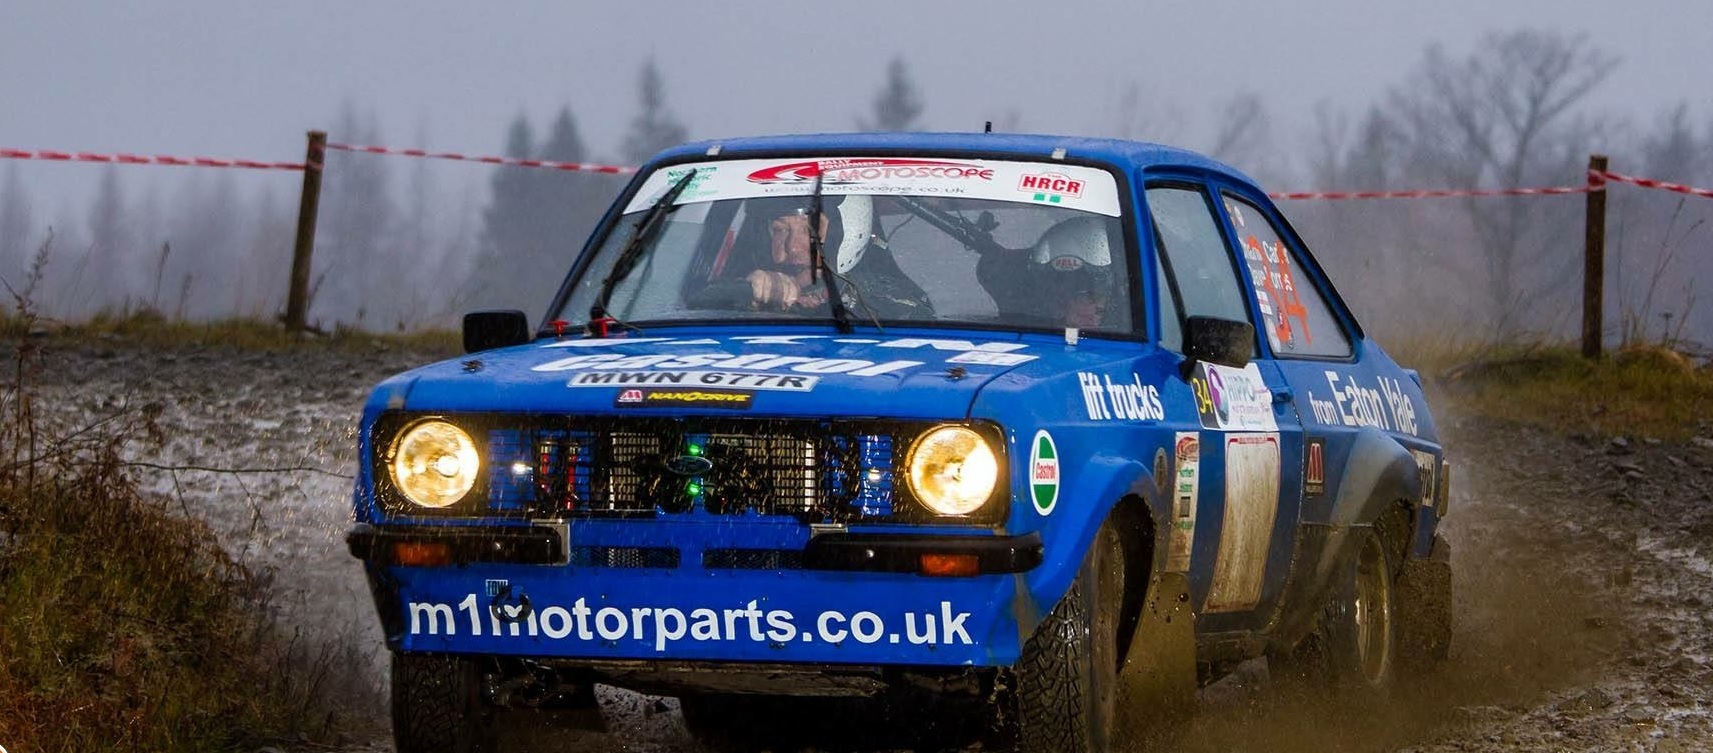 Driver Dave Forrest and co-driver Charlie Carter raced to victory in the HRCR Motorscope Northern Historic Gravel Rally Championship in a fully rally-prepared group 4 Ford Escort Mk 2. Picture: Chasingthecars.com